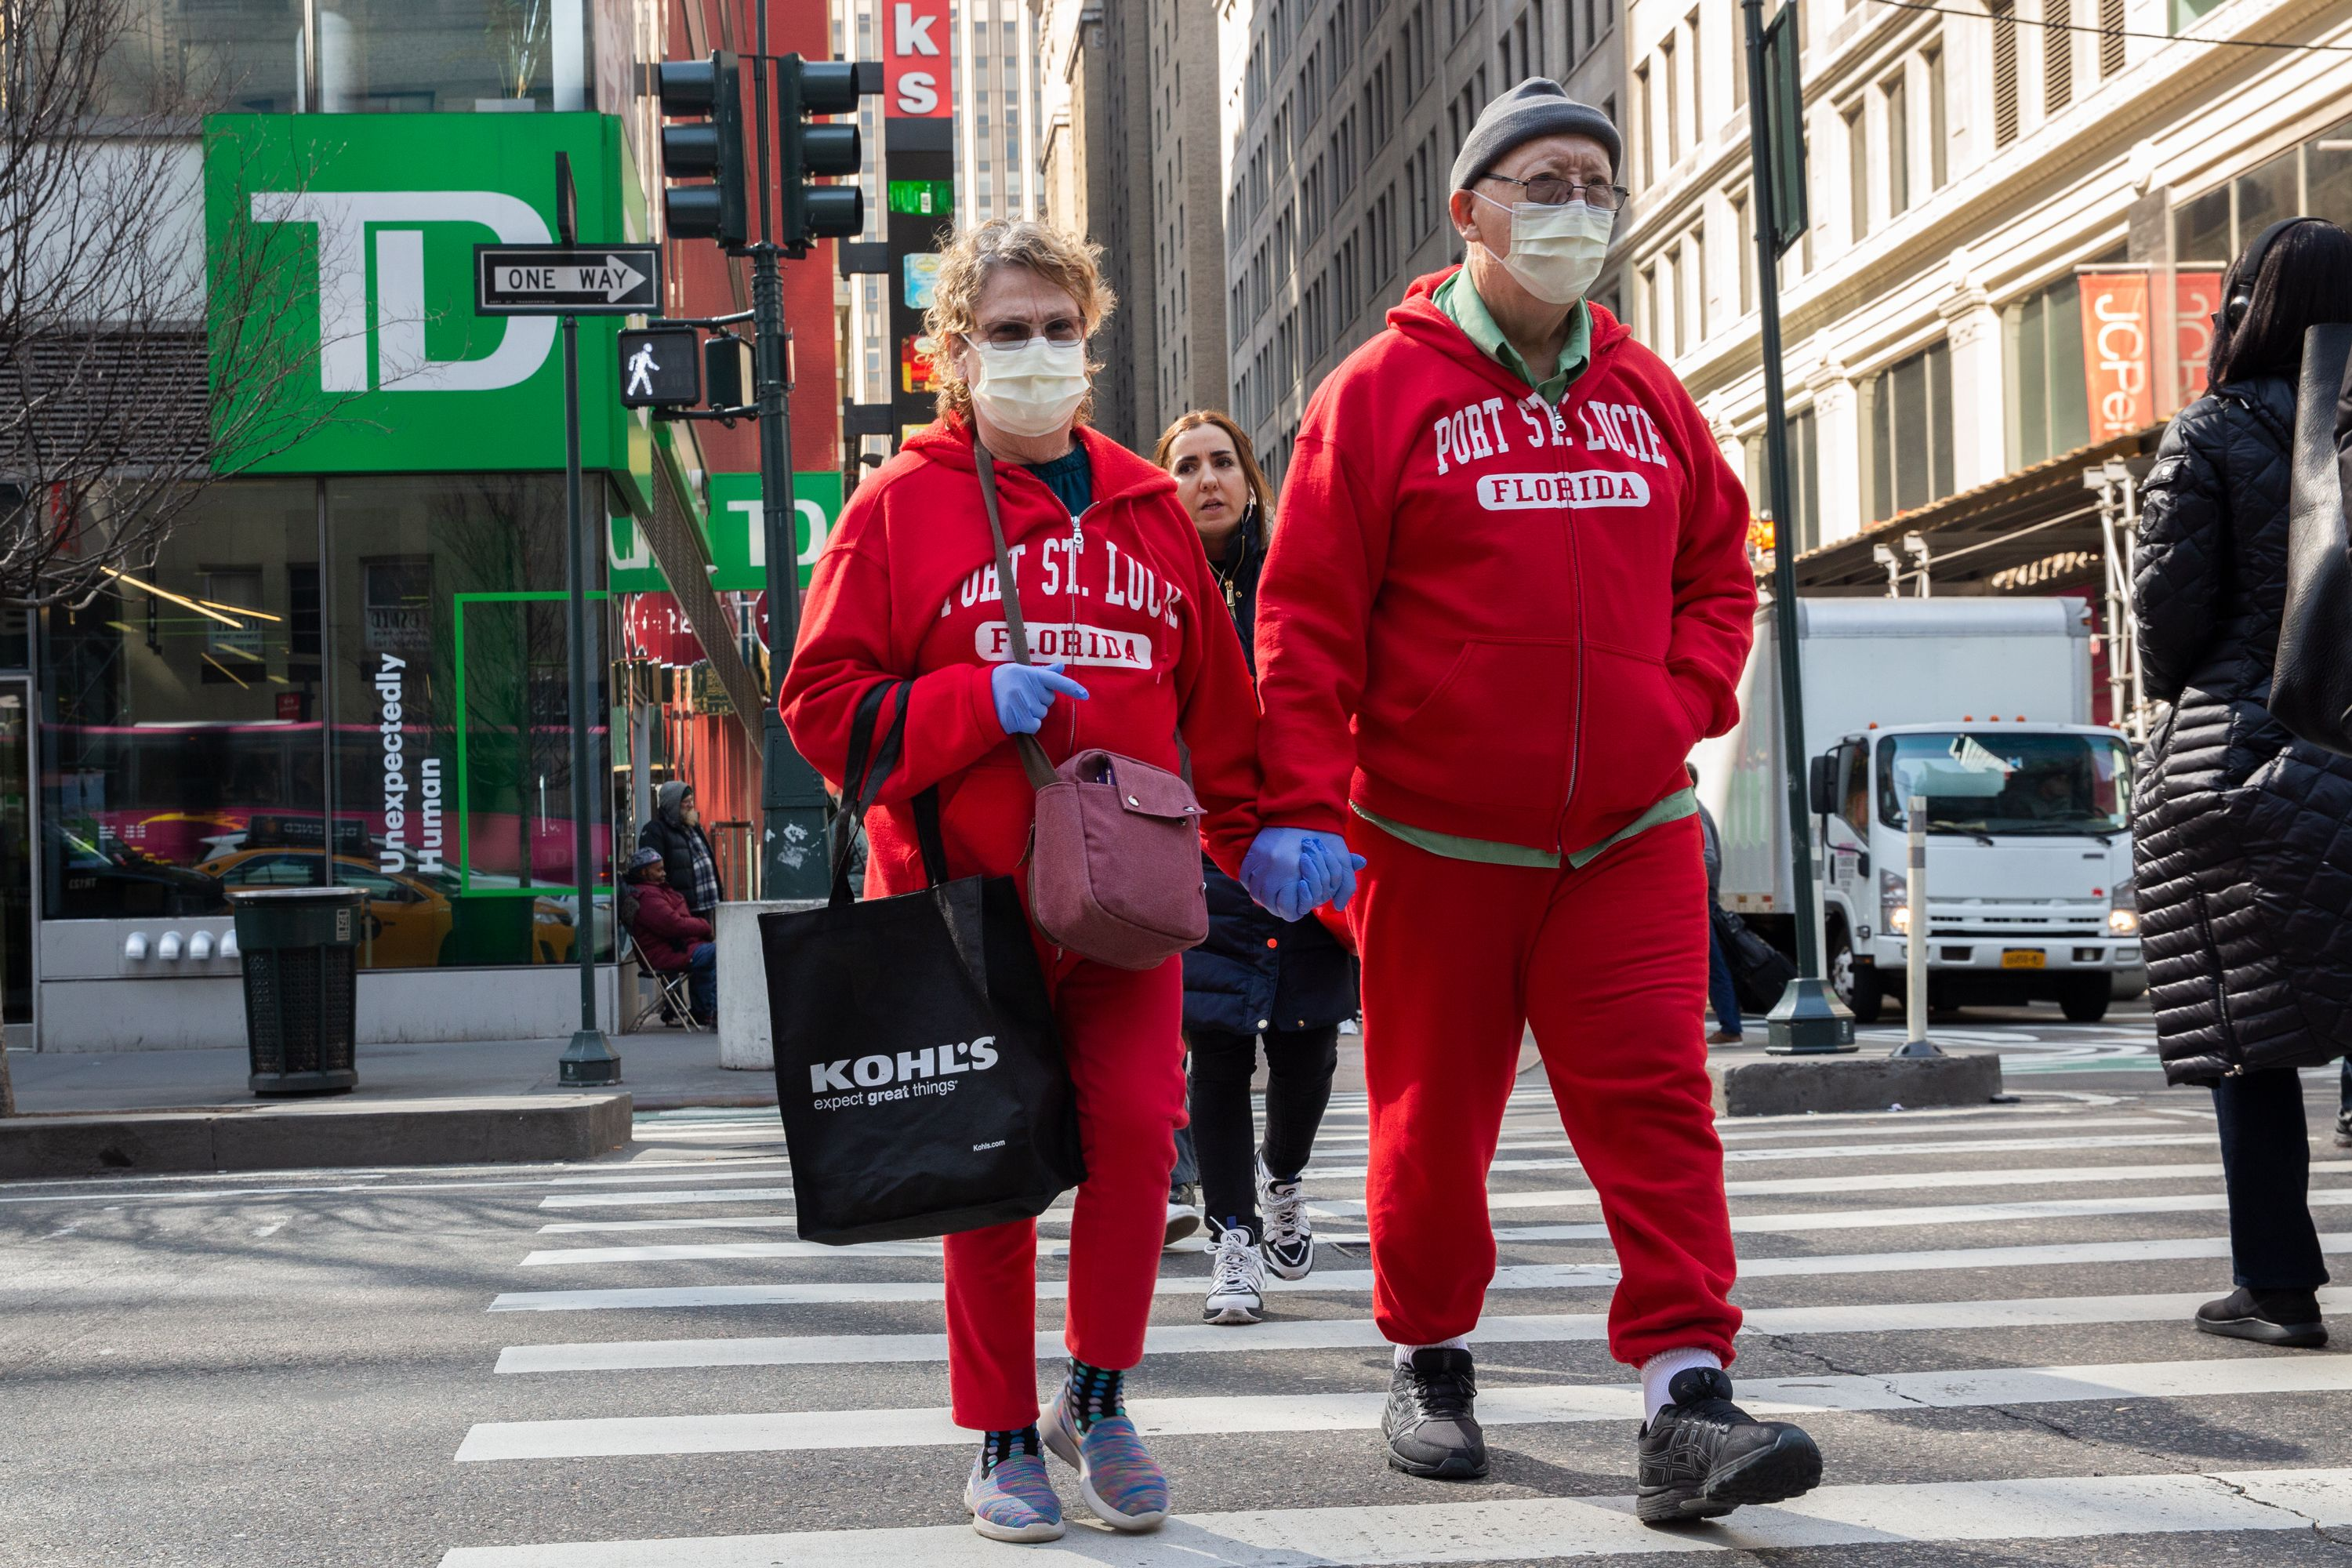 A couple wears masks and gloves while officials found the first case of Coronavirus in the city.